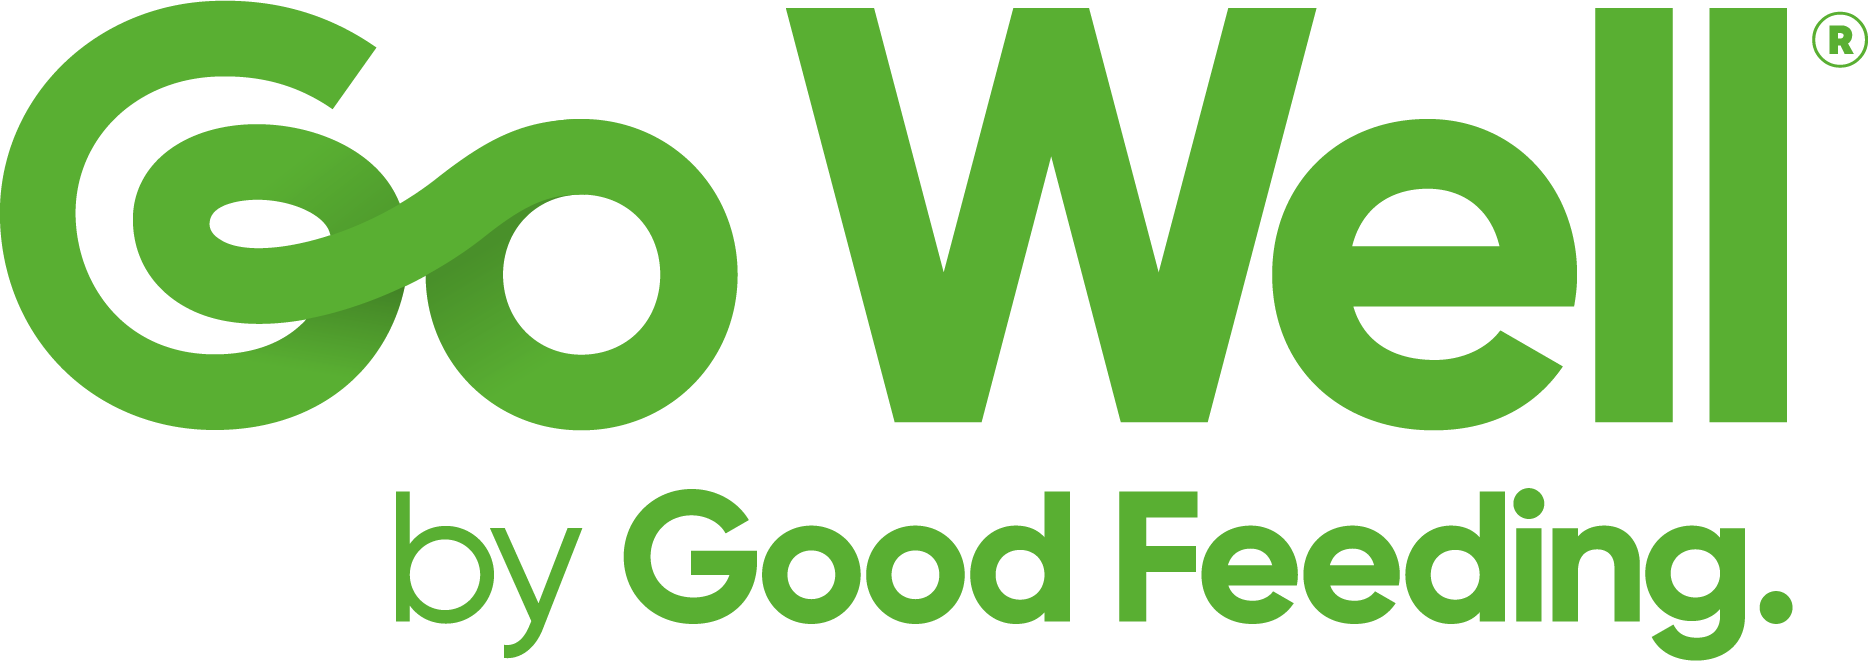 Go Well by Good Feeding Logo RGB - Green (R)